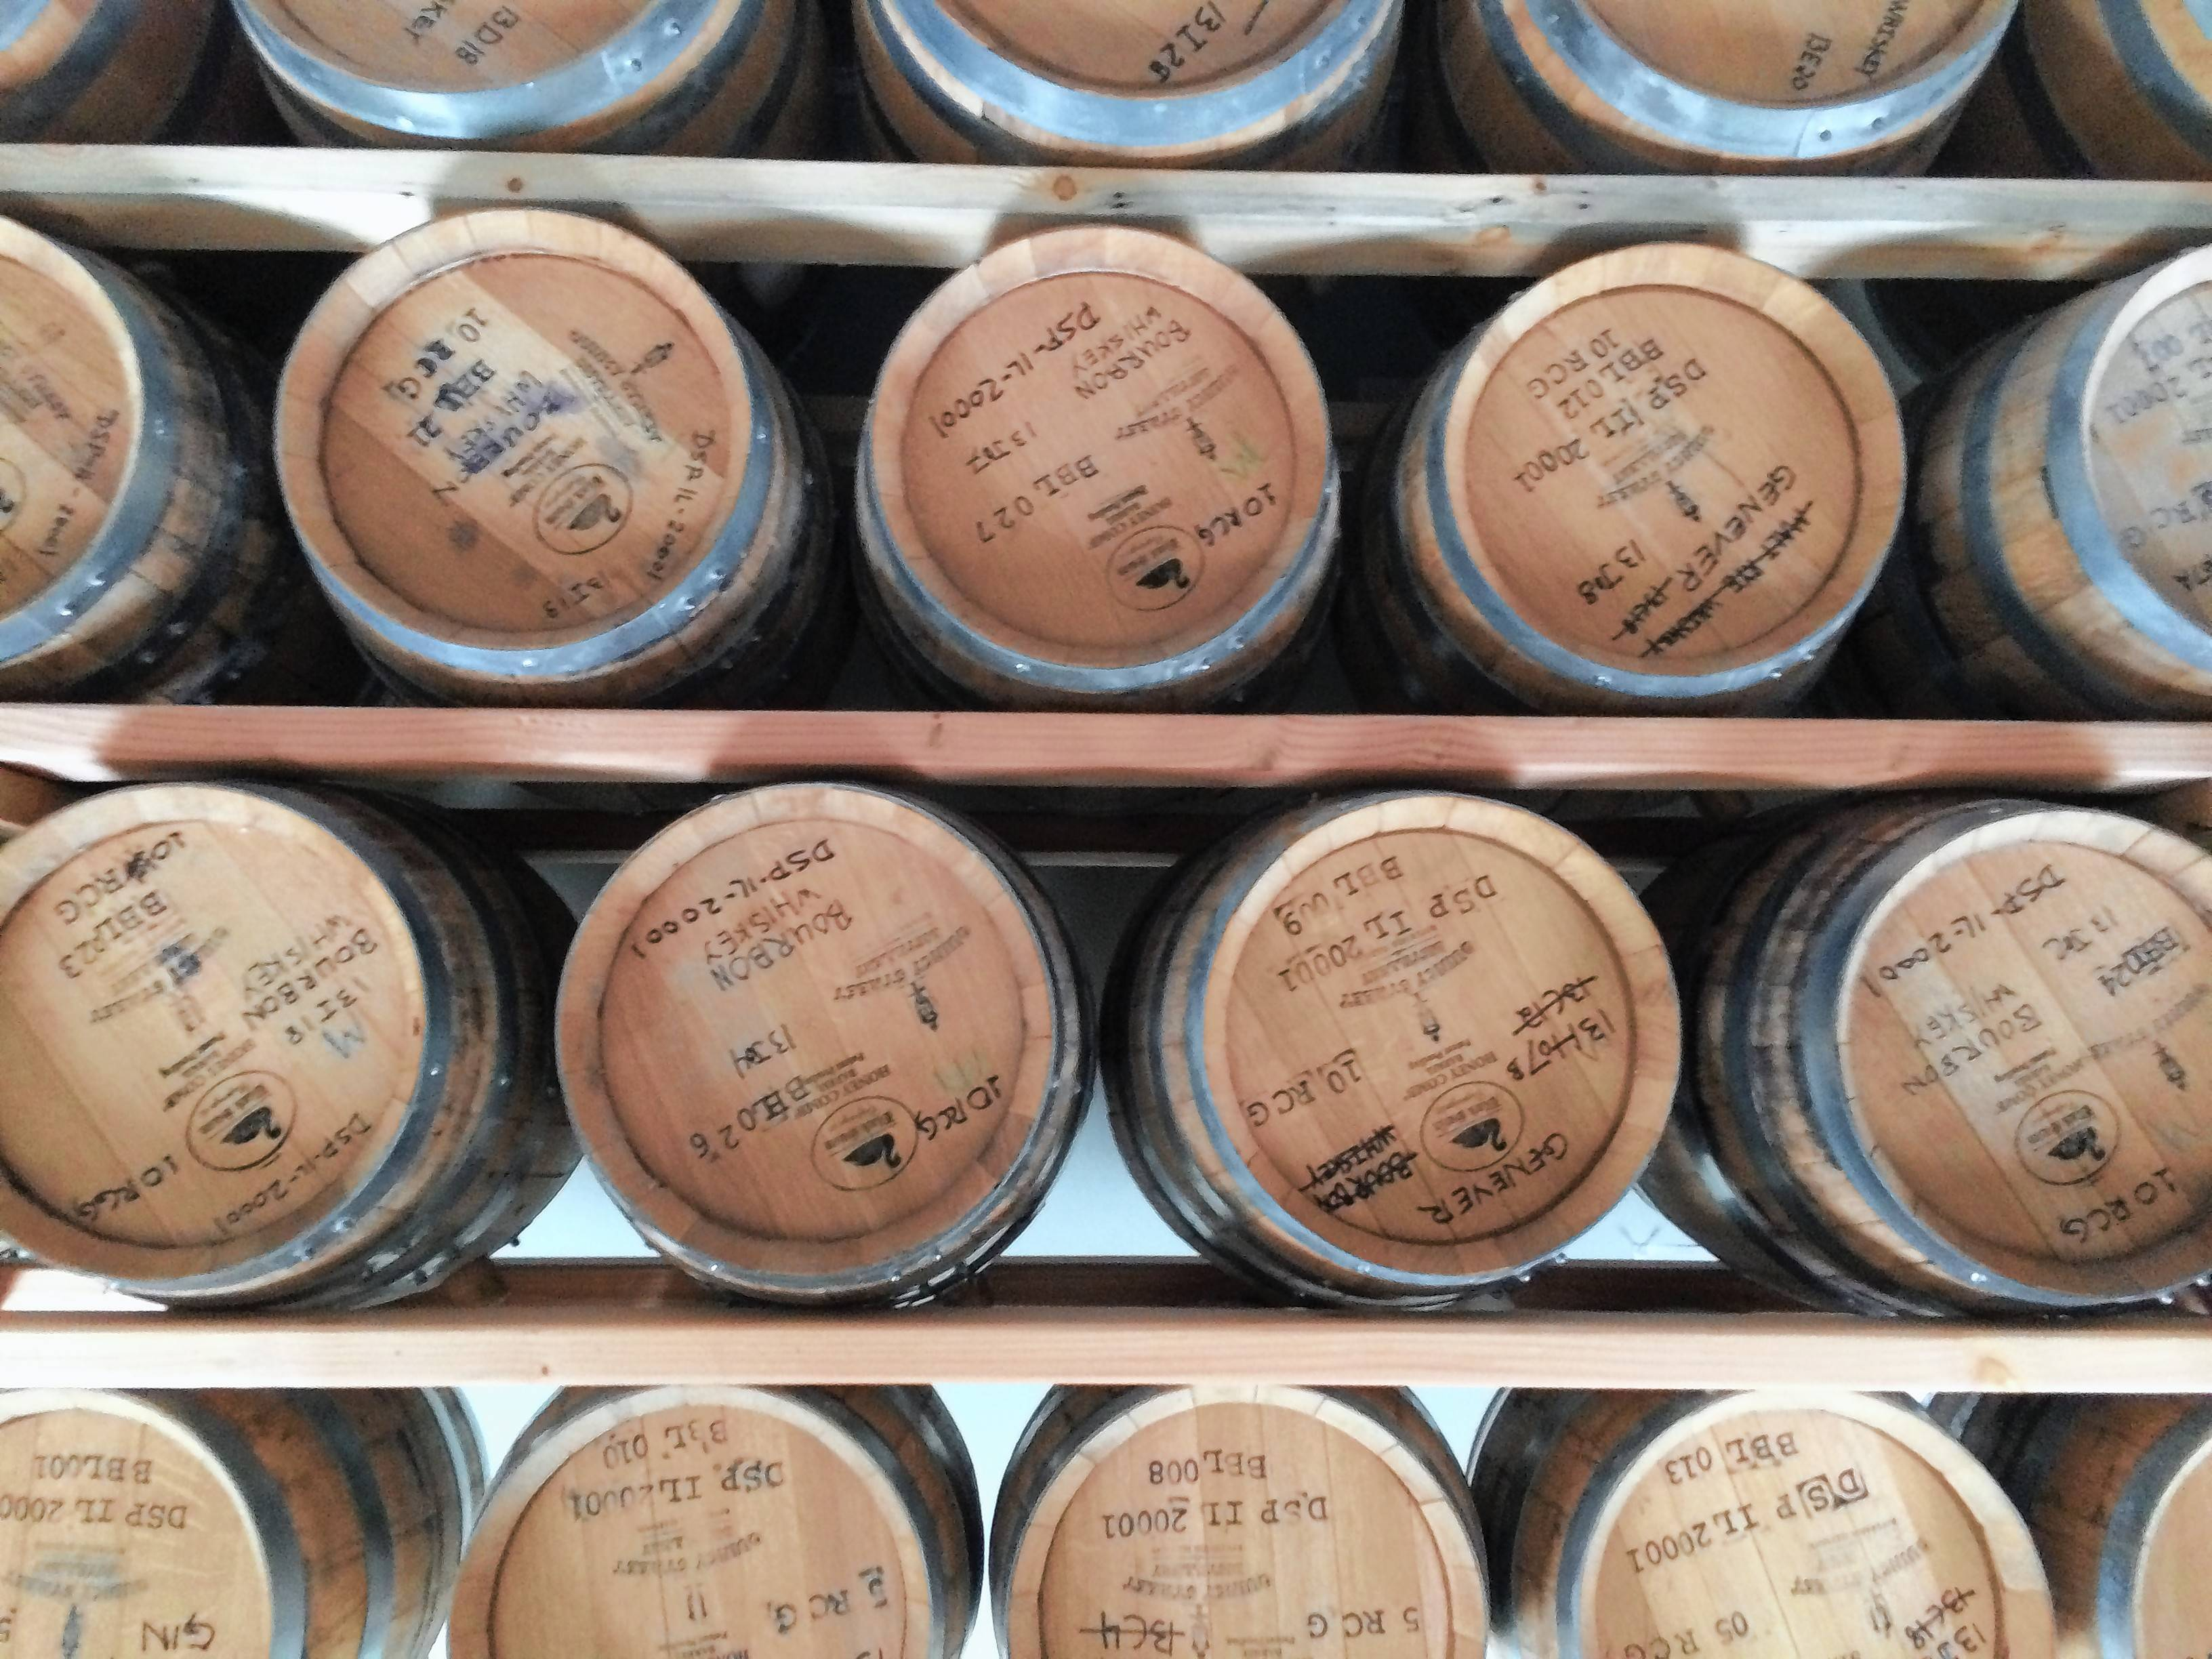 Learn about the whiskey distillation and aging process at Riverside's Quincy Street Distillery.